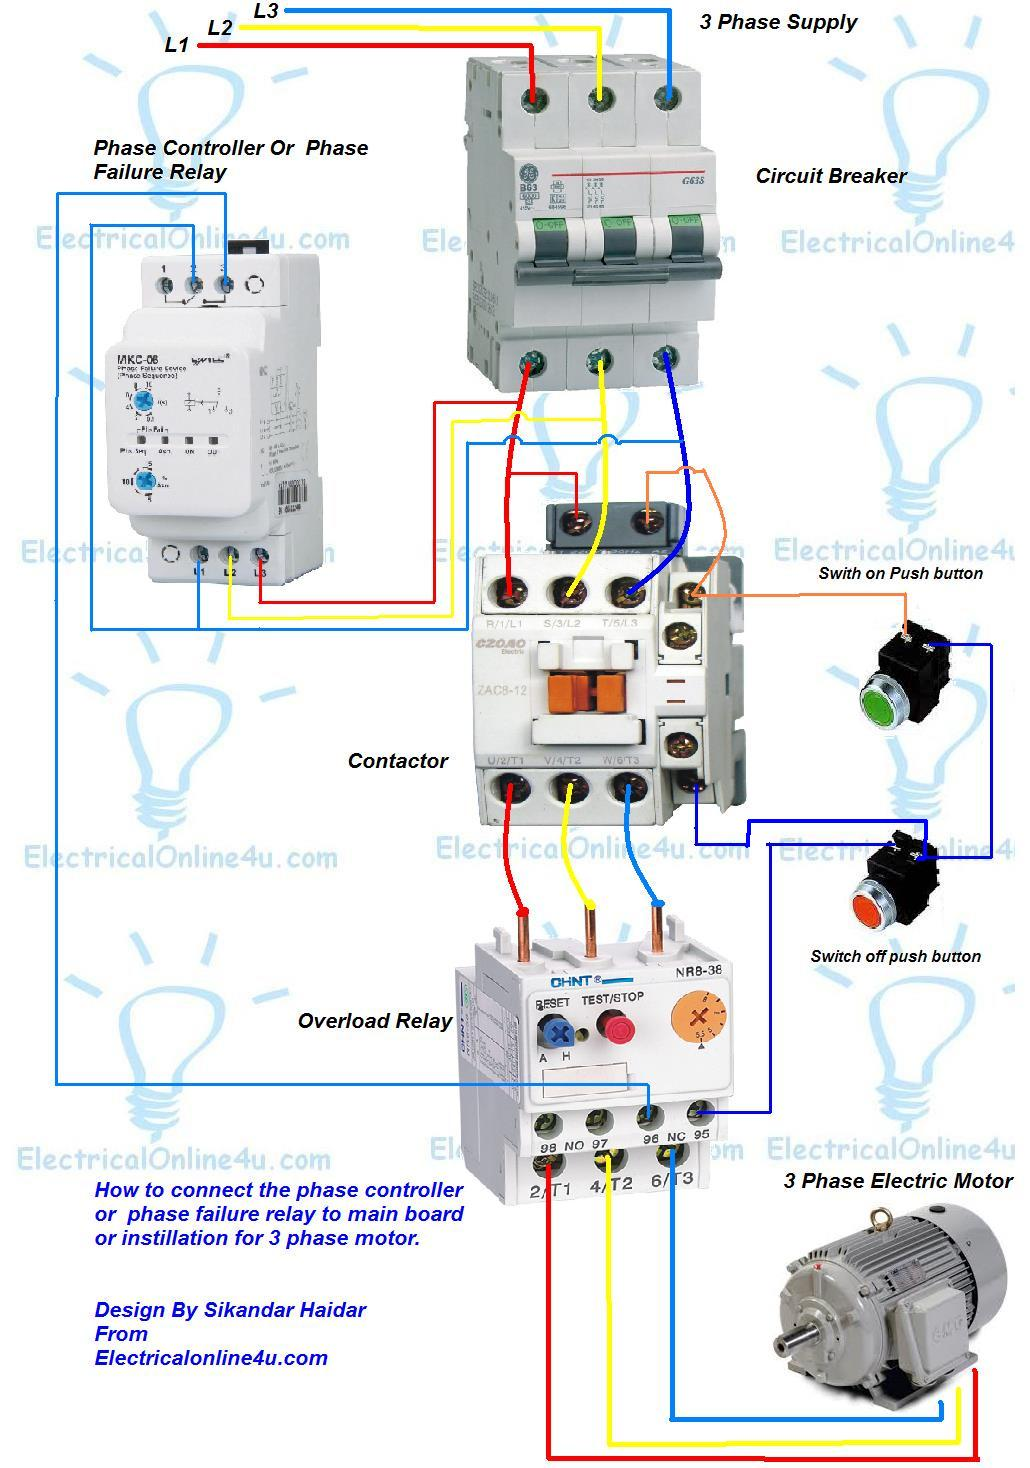 Phase%2Bfailure%2Brelay%2B %2Bphase%2Bcontroller%2Binstilaion%2Bin%2B3%2Bphase%2BMain%2Bboard%2Bor%2Bfor%2B3%2Bphase%2Bmotor phase controller wiring phase failure relay diagram electrical 3 phase surge protector wiring diagram at gsmportal.co